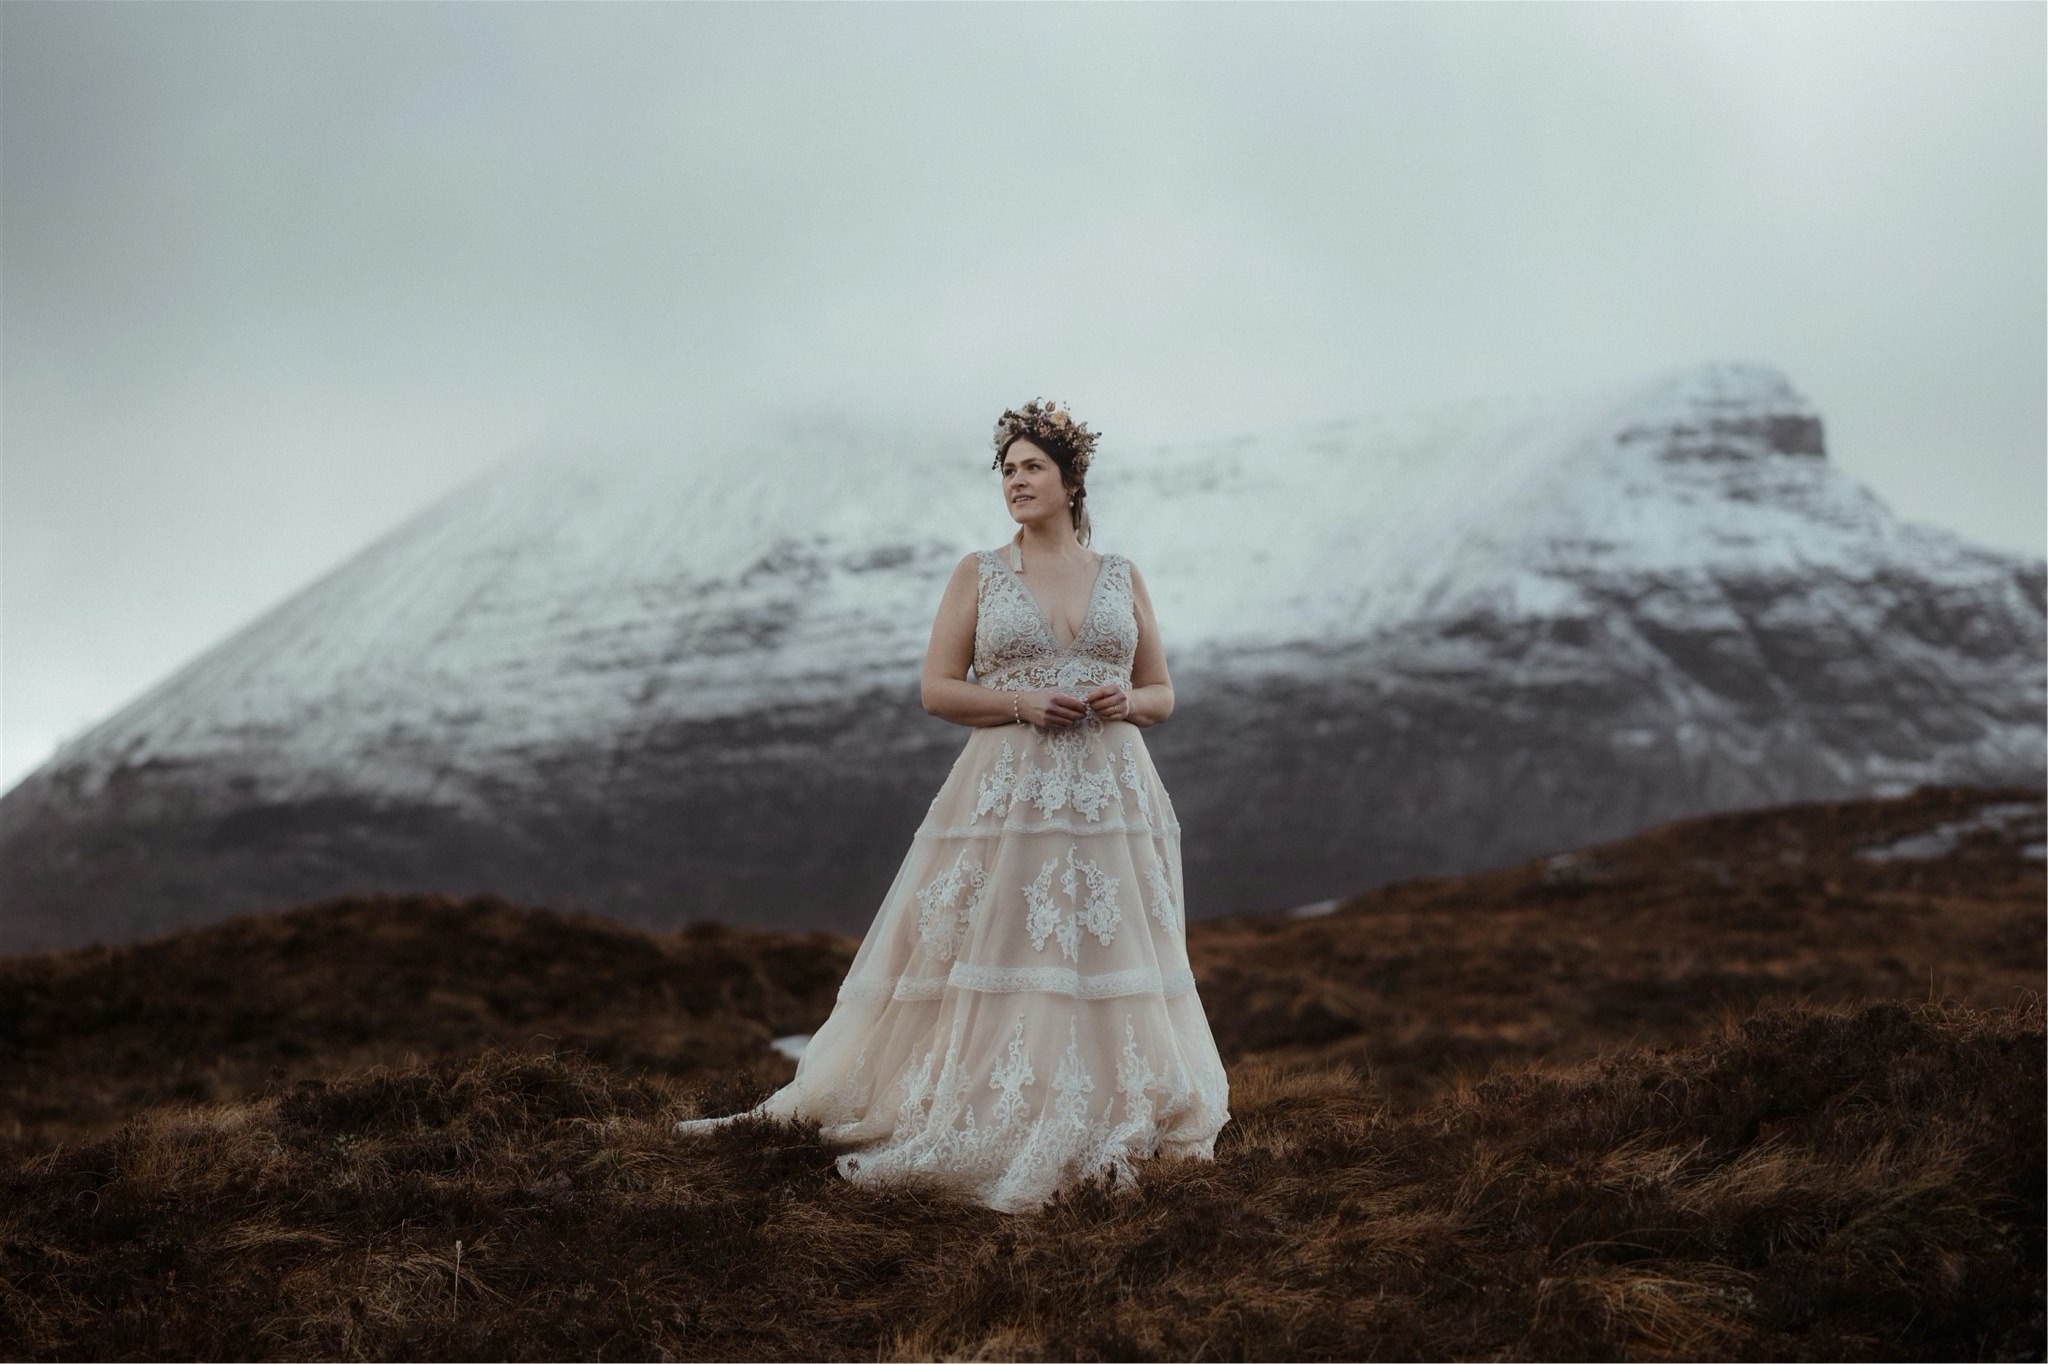 Bride with flower crown and mountain backdrop during a mountain elopement wedding in Assynt, Scotland